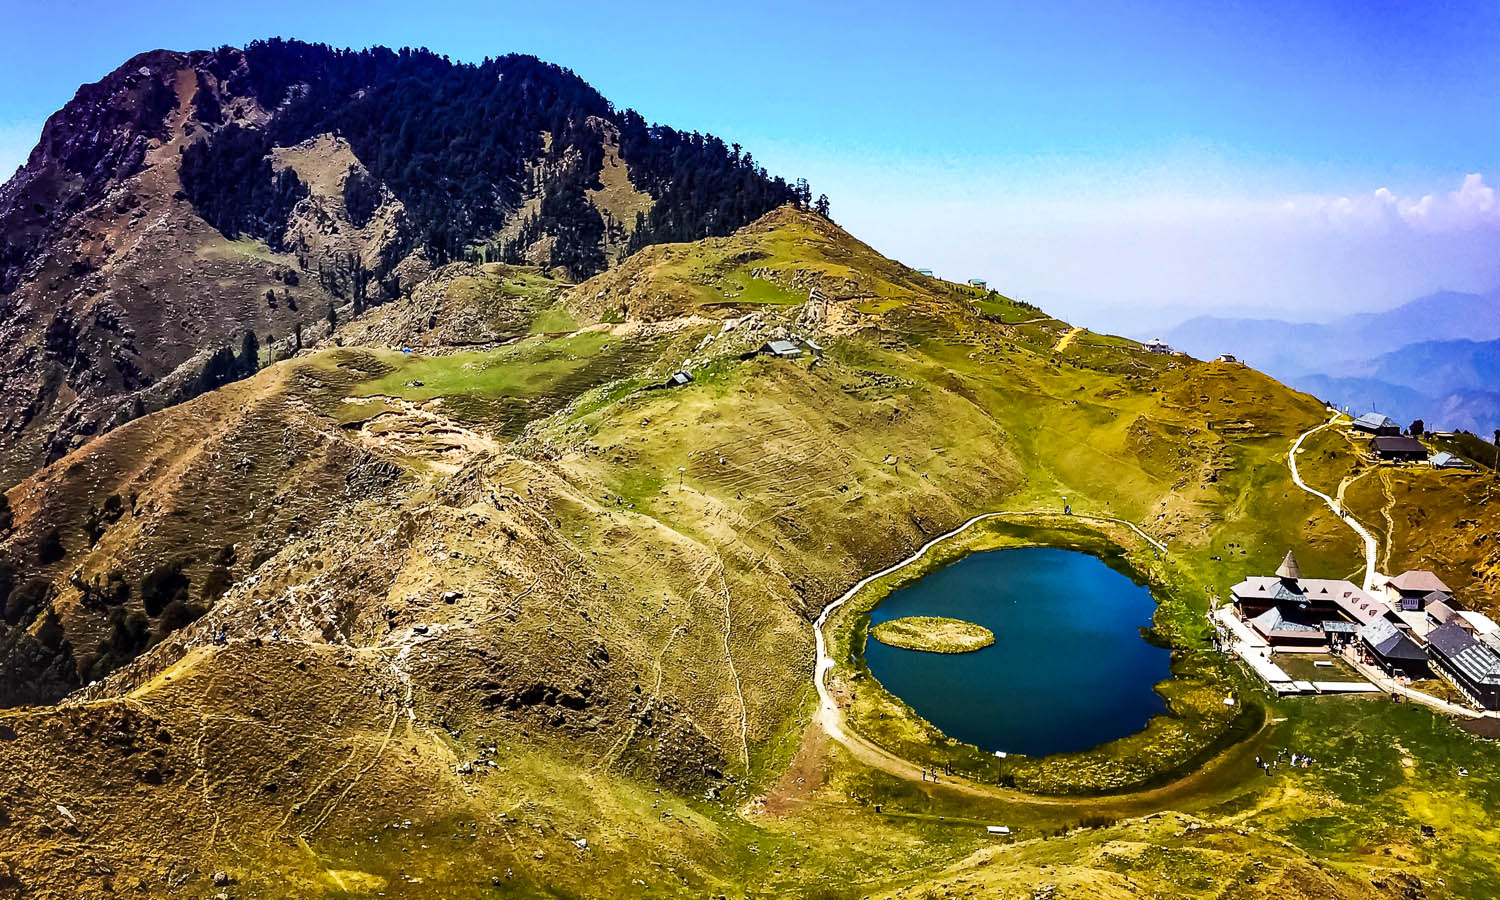 Prashar Lake with its temple and floating island. Image:  Bharat Devgan | Dreamstime